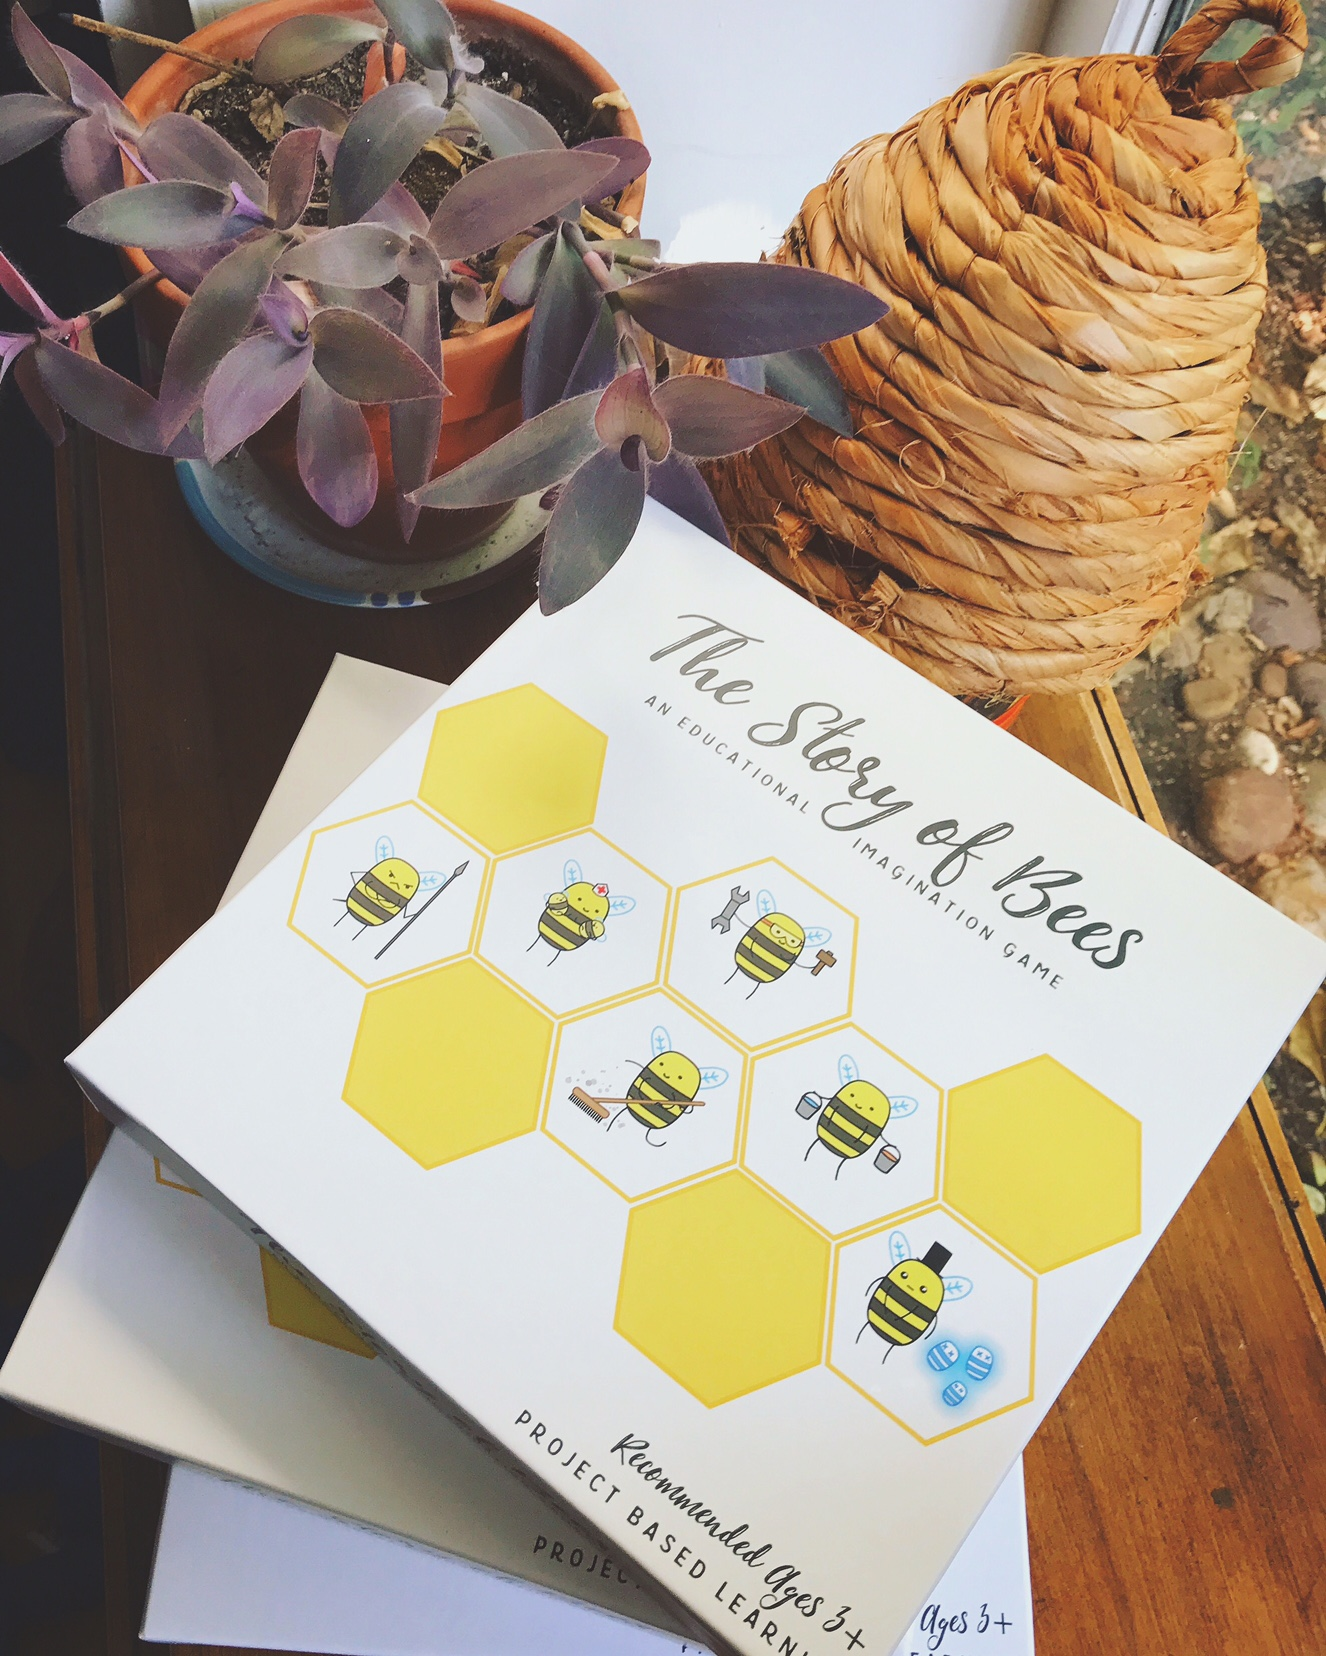 They Story of Bees! Educational game that teaches children about honey bees.